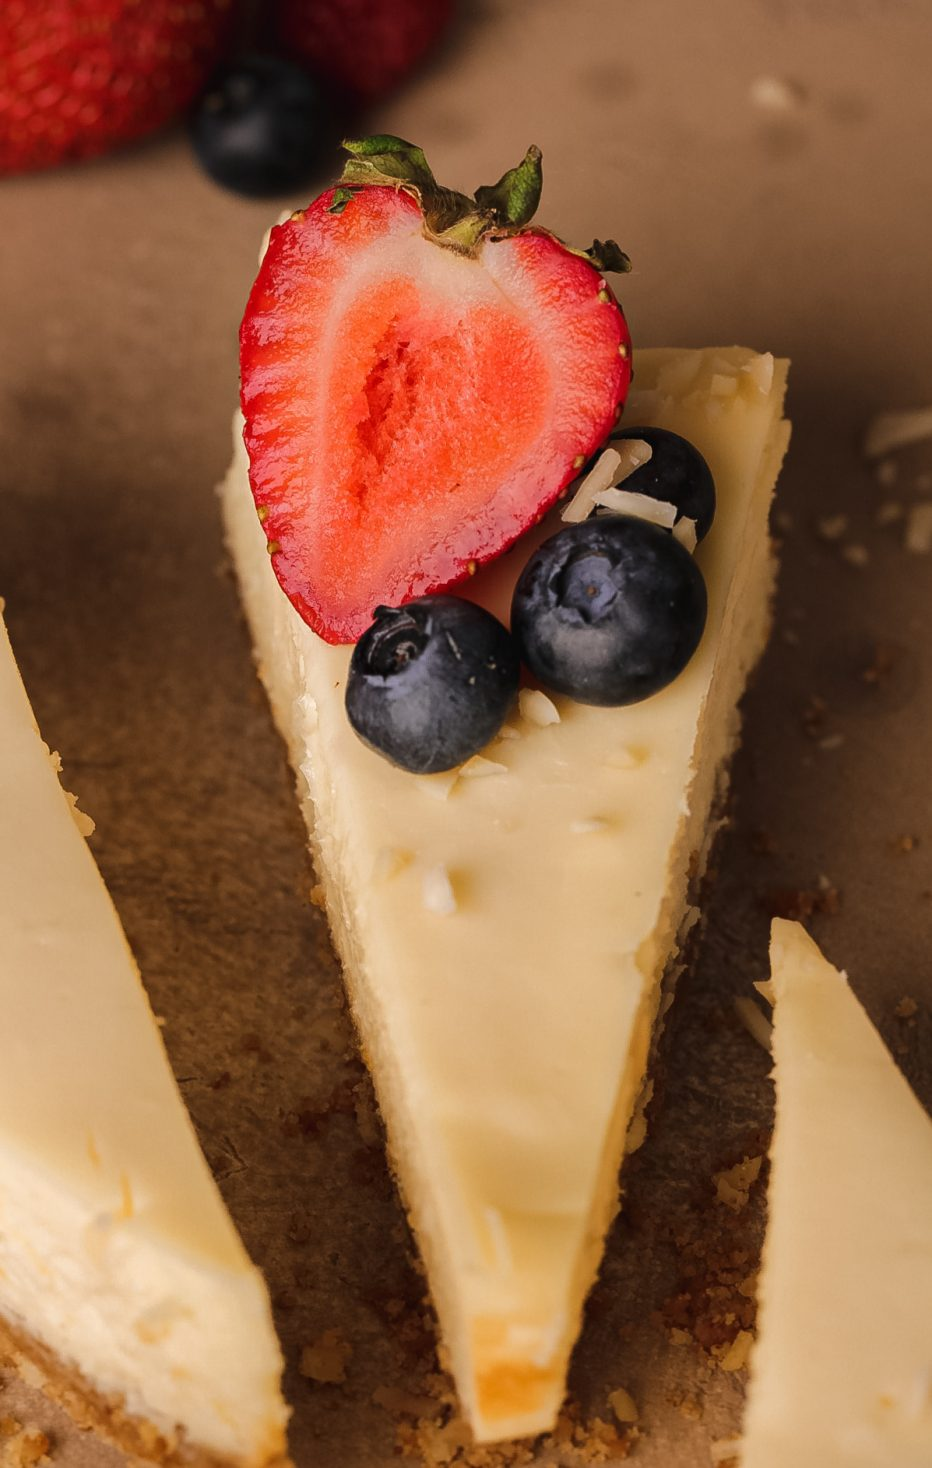 Graham cracker crust almond cheesecake baked in a loaf pan; no mixer and no water bath required!